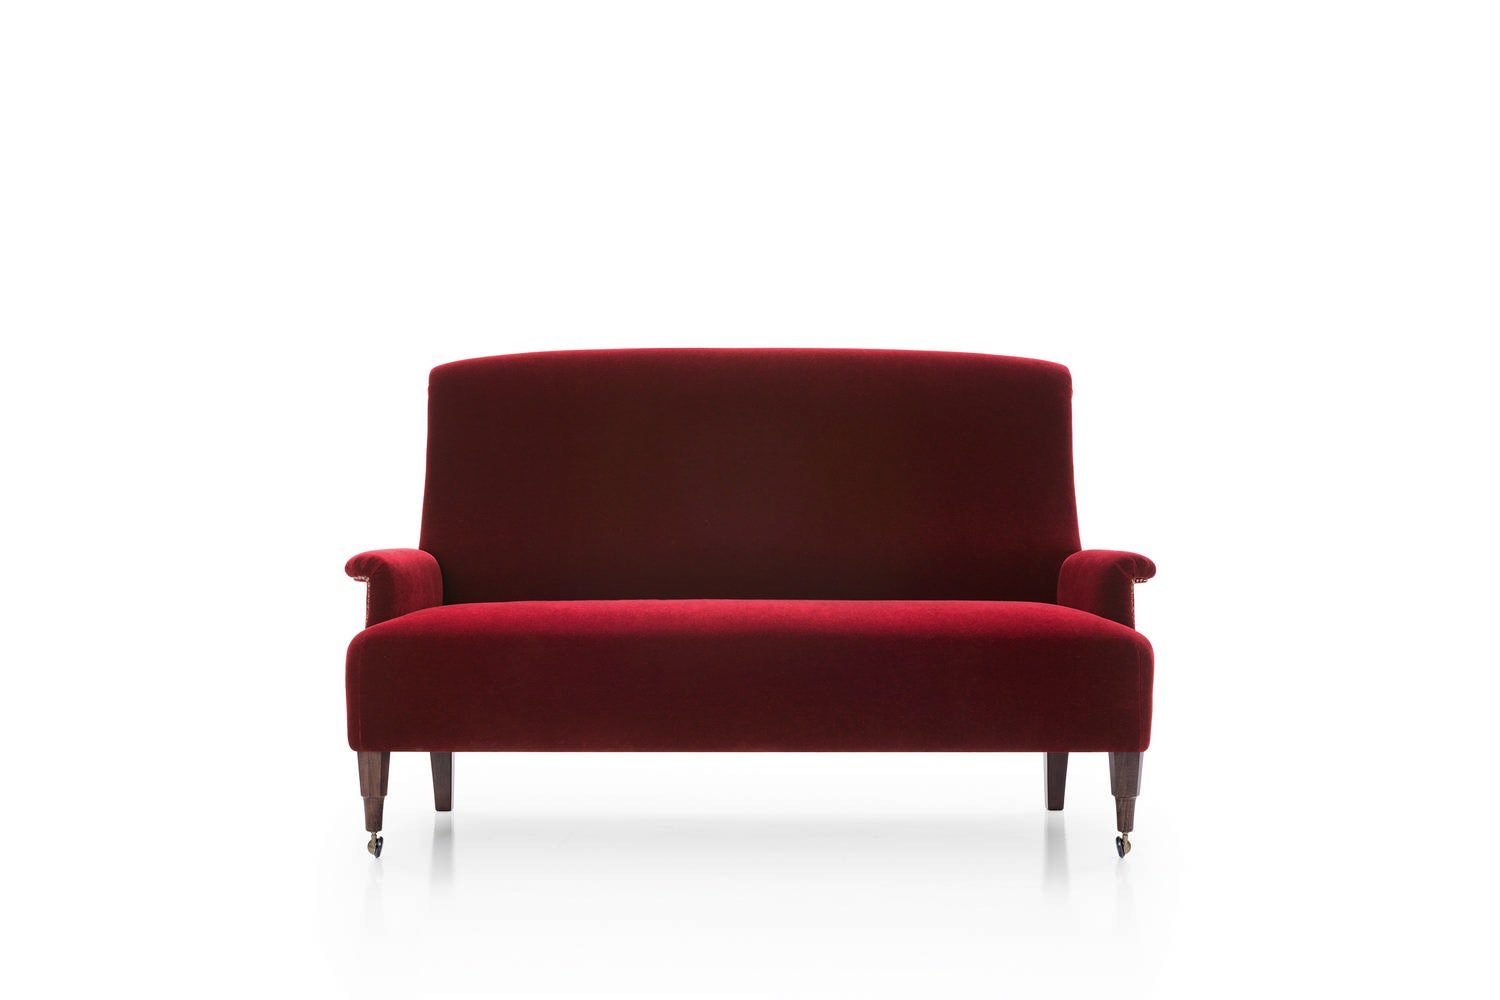 ABCD Sofa by Luigi Caccia Dominioni for Azucena